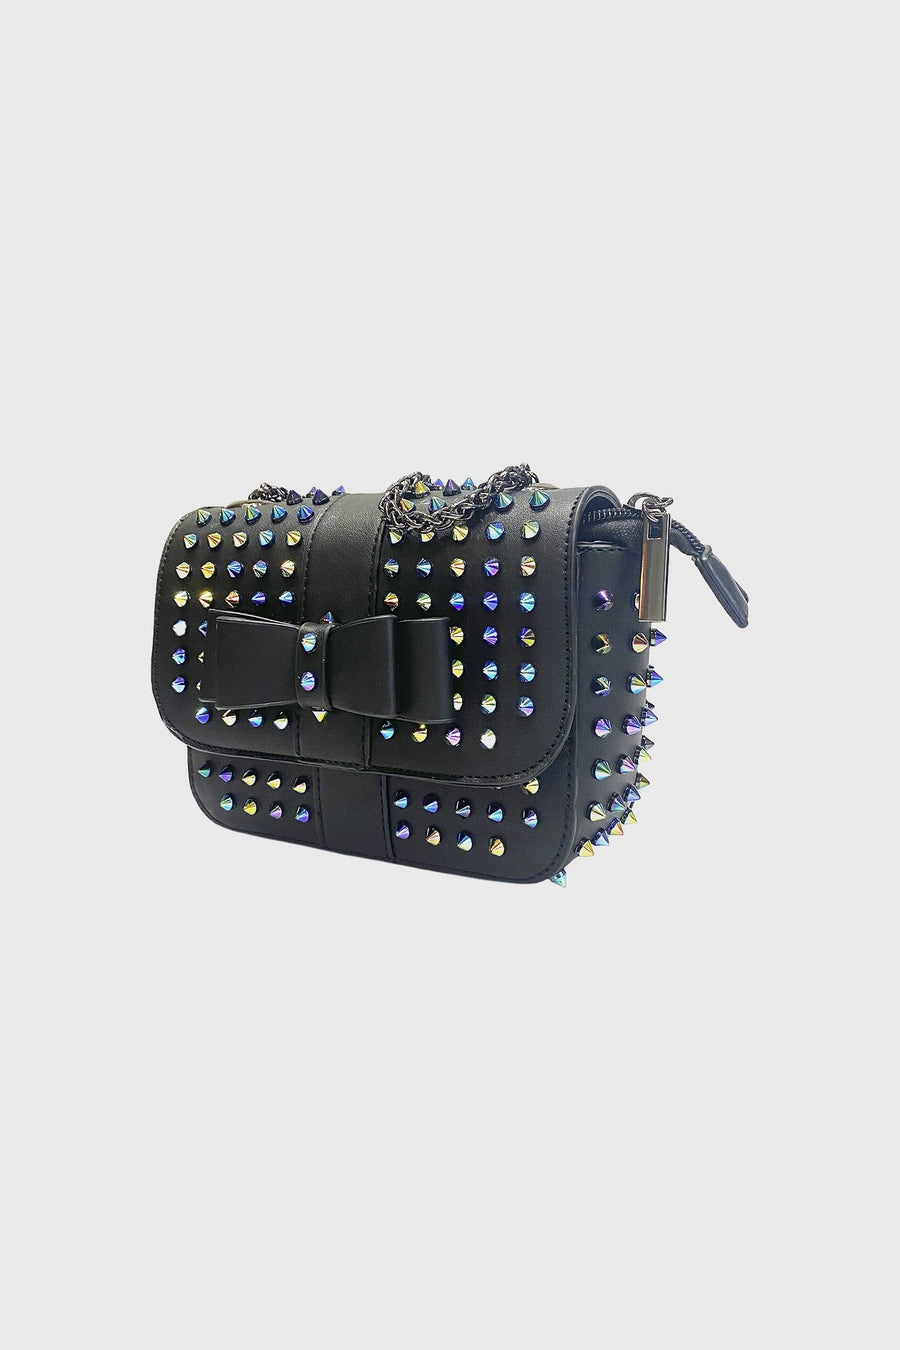 Estelle Multi Studded Detail Mini Cross Body Bag In Black Faux Leather